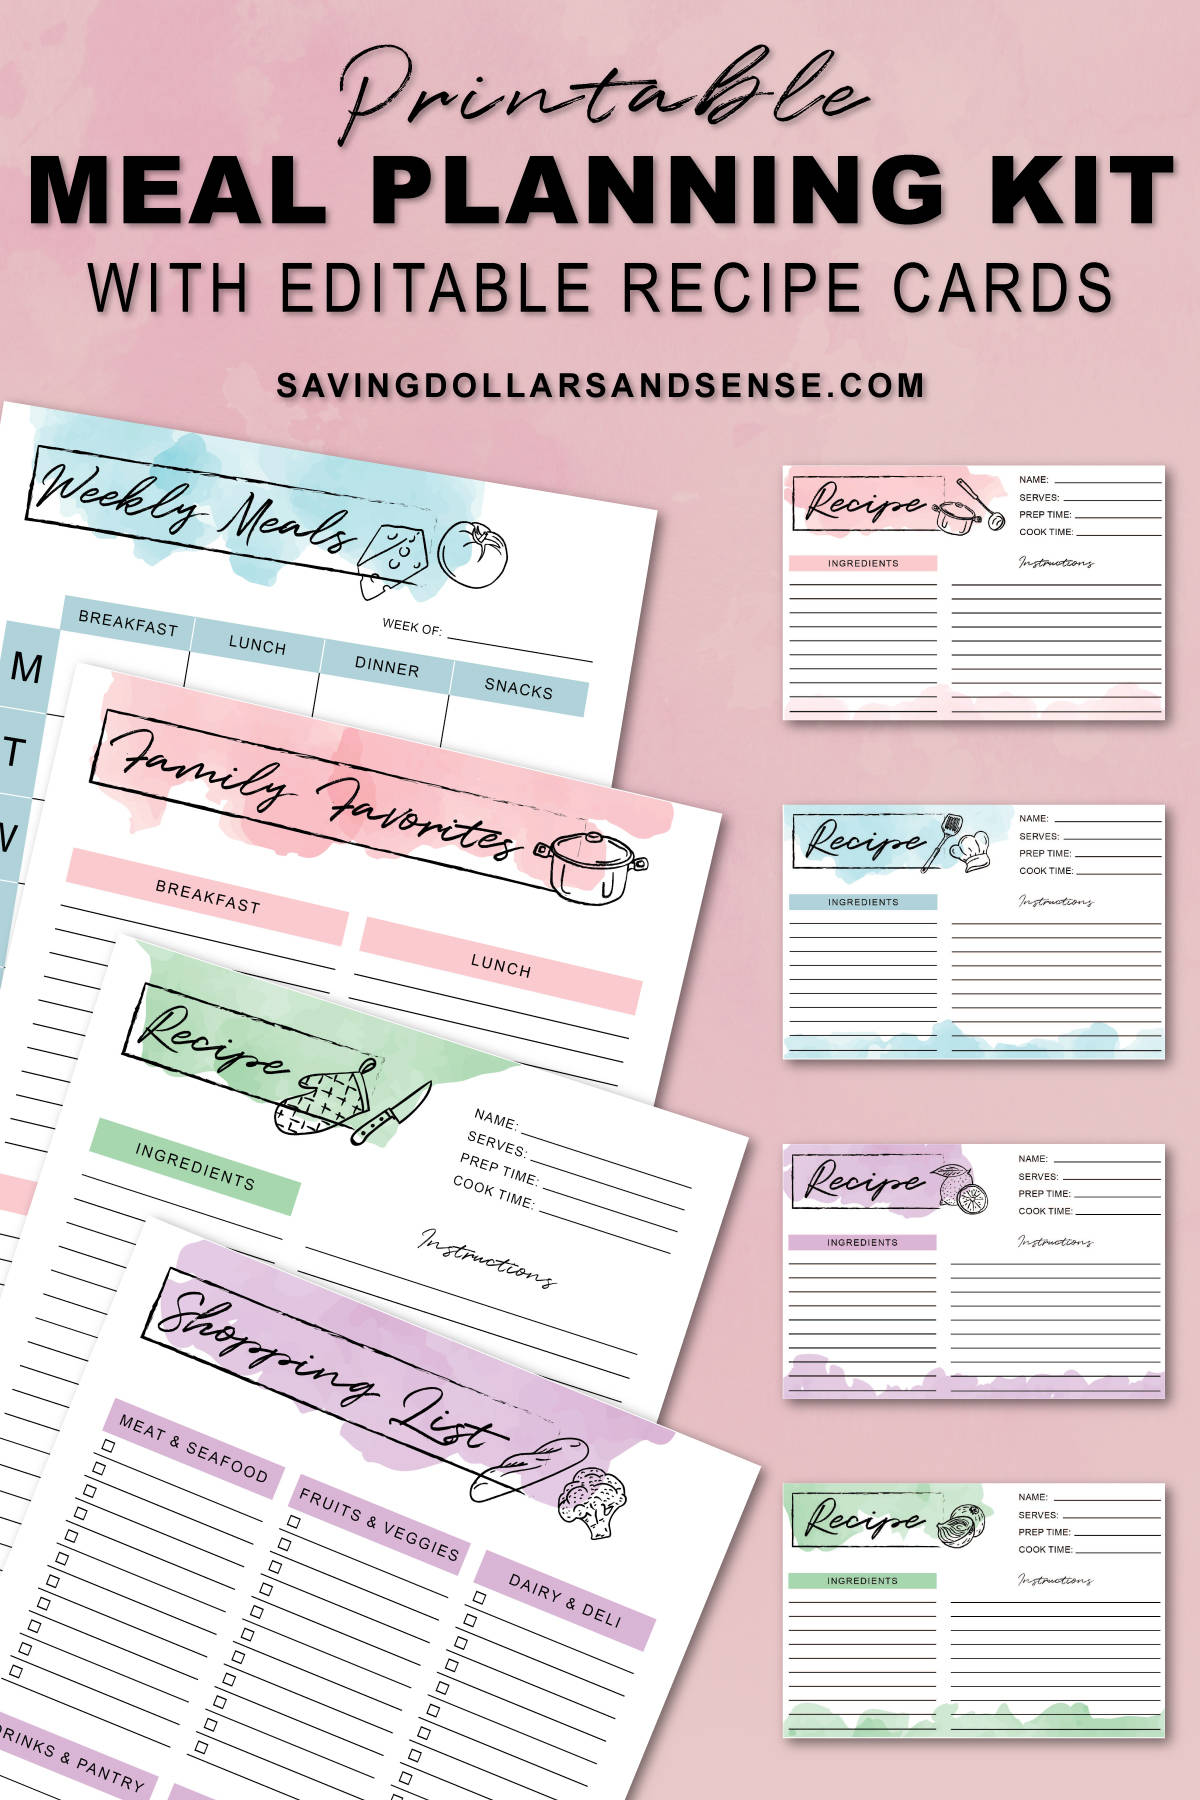 Free printable meal planning kit recipe cards.